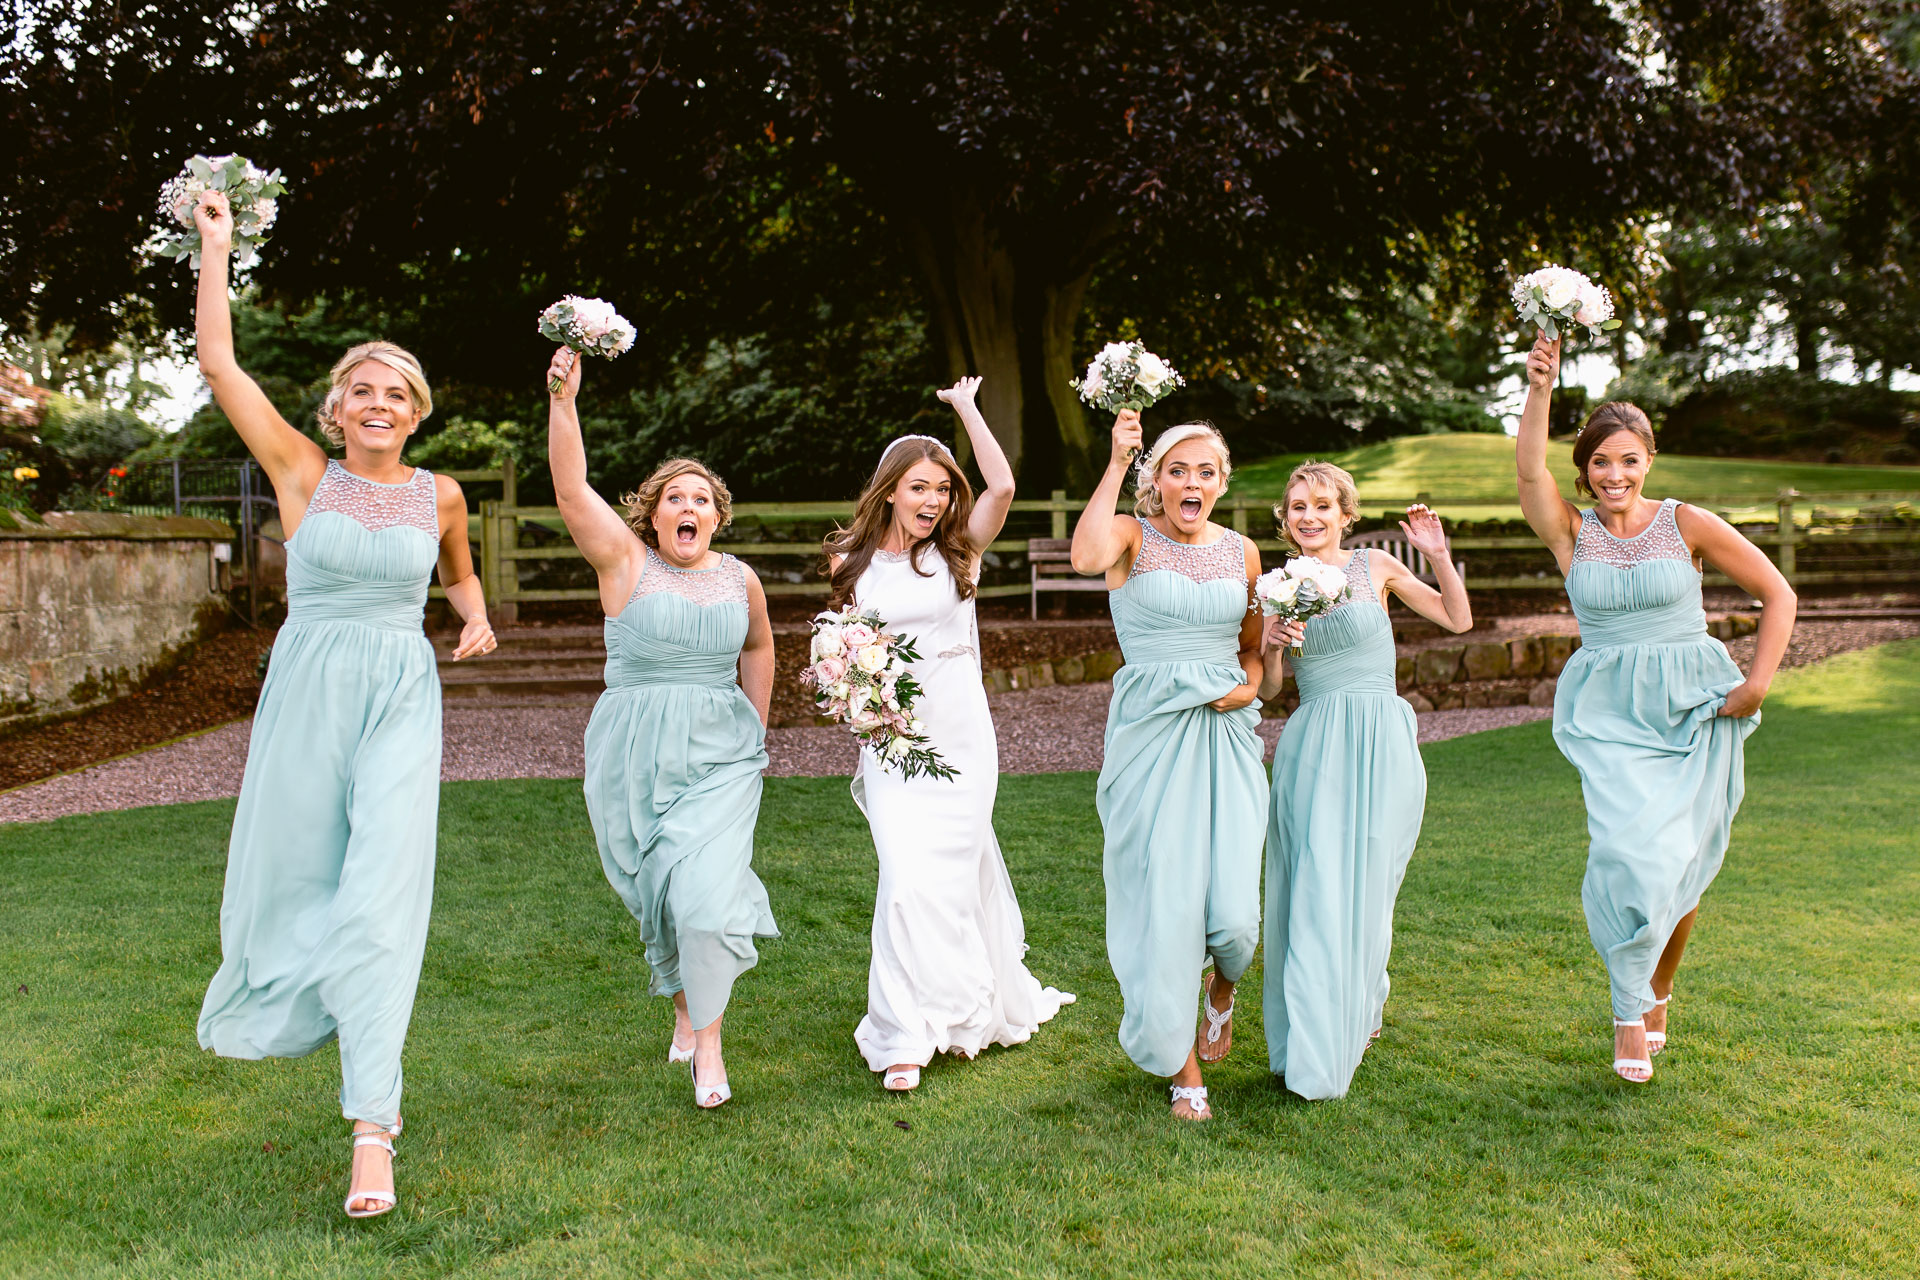 The Citadel wedding Shropshire Sarah_Jane and Steve bridesmaids running with bouquets